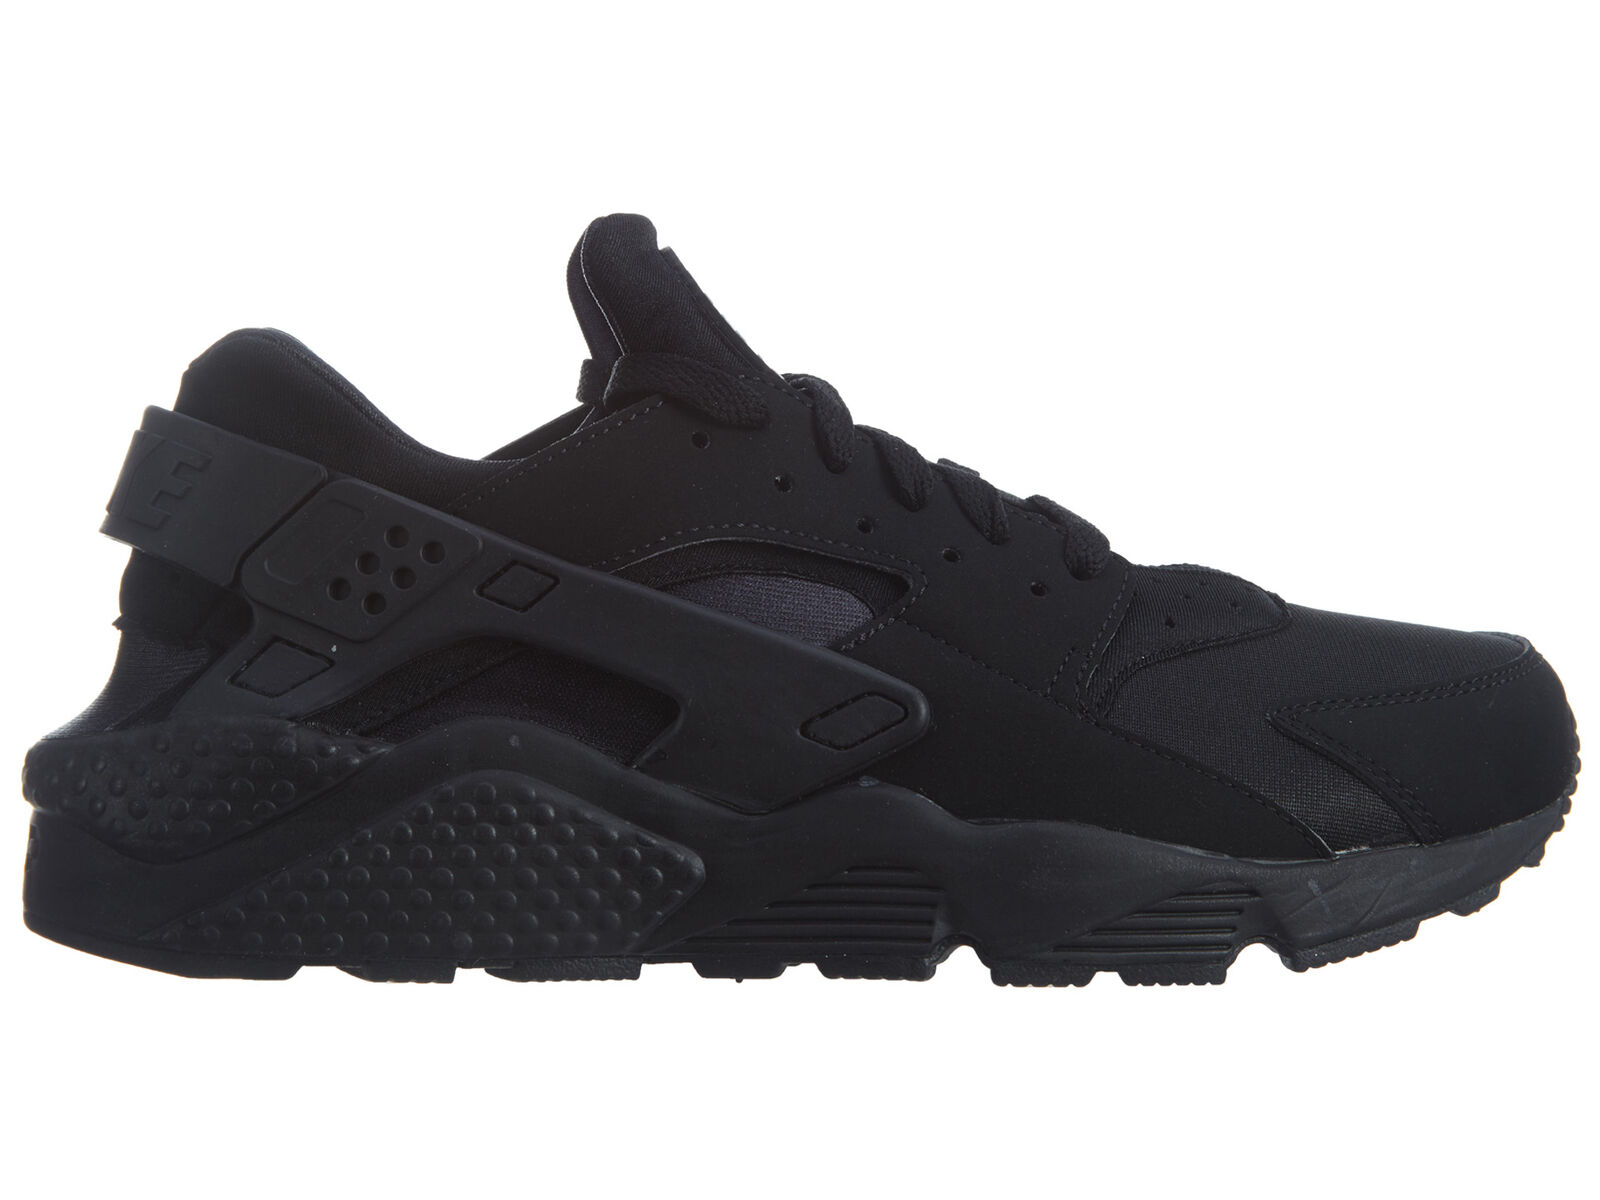 Nike Air Huarache Mens 318429-003 Black Textile Athletic Running Shoes Size 8